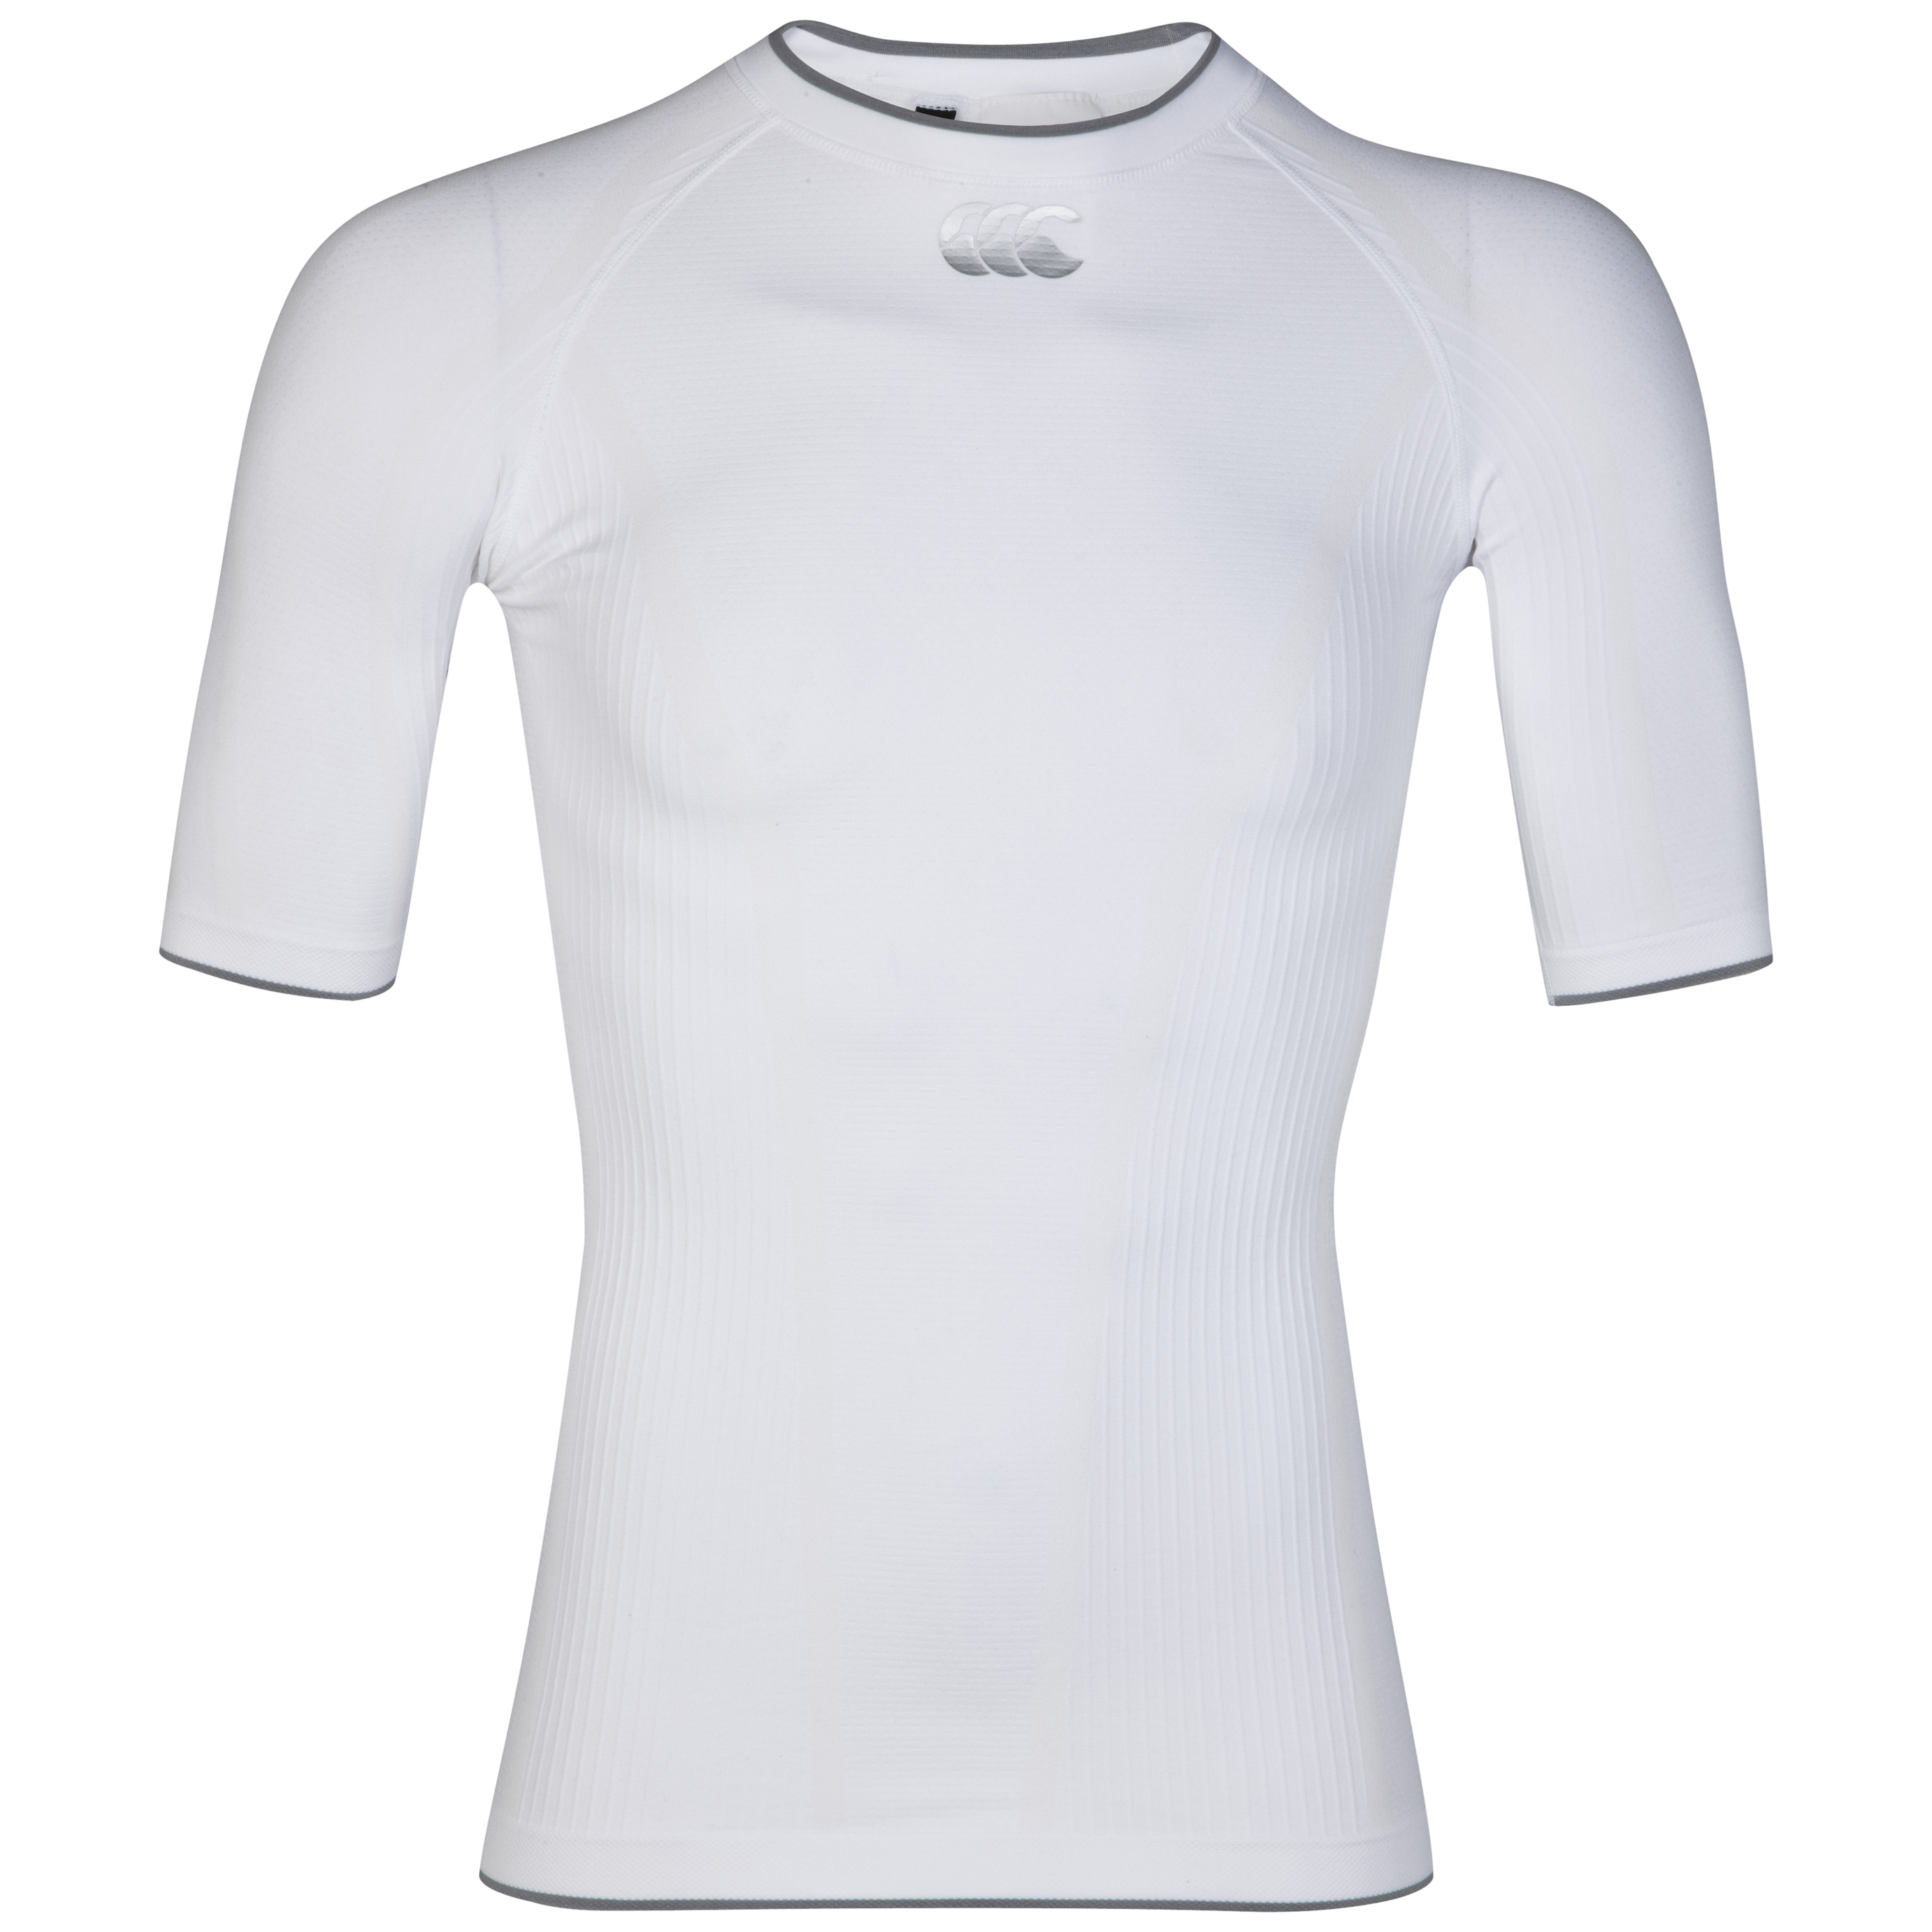 Canterbury iD Top - Short Sleeve - White